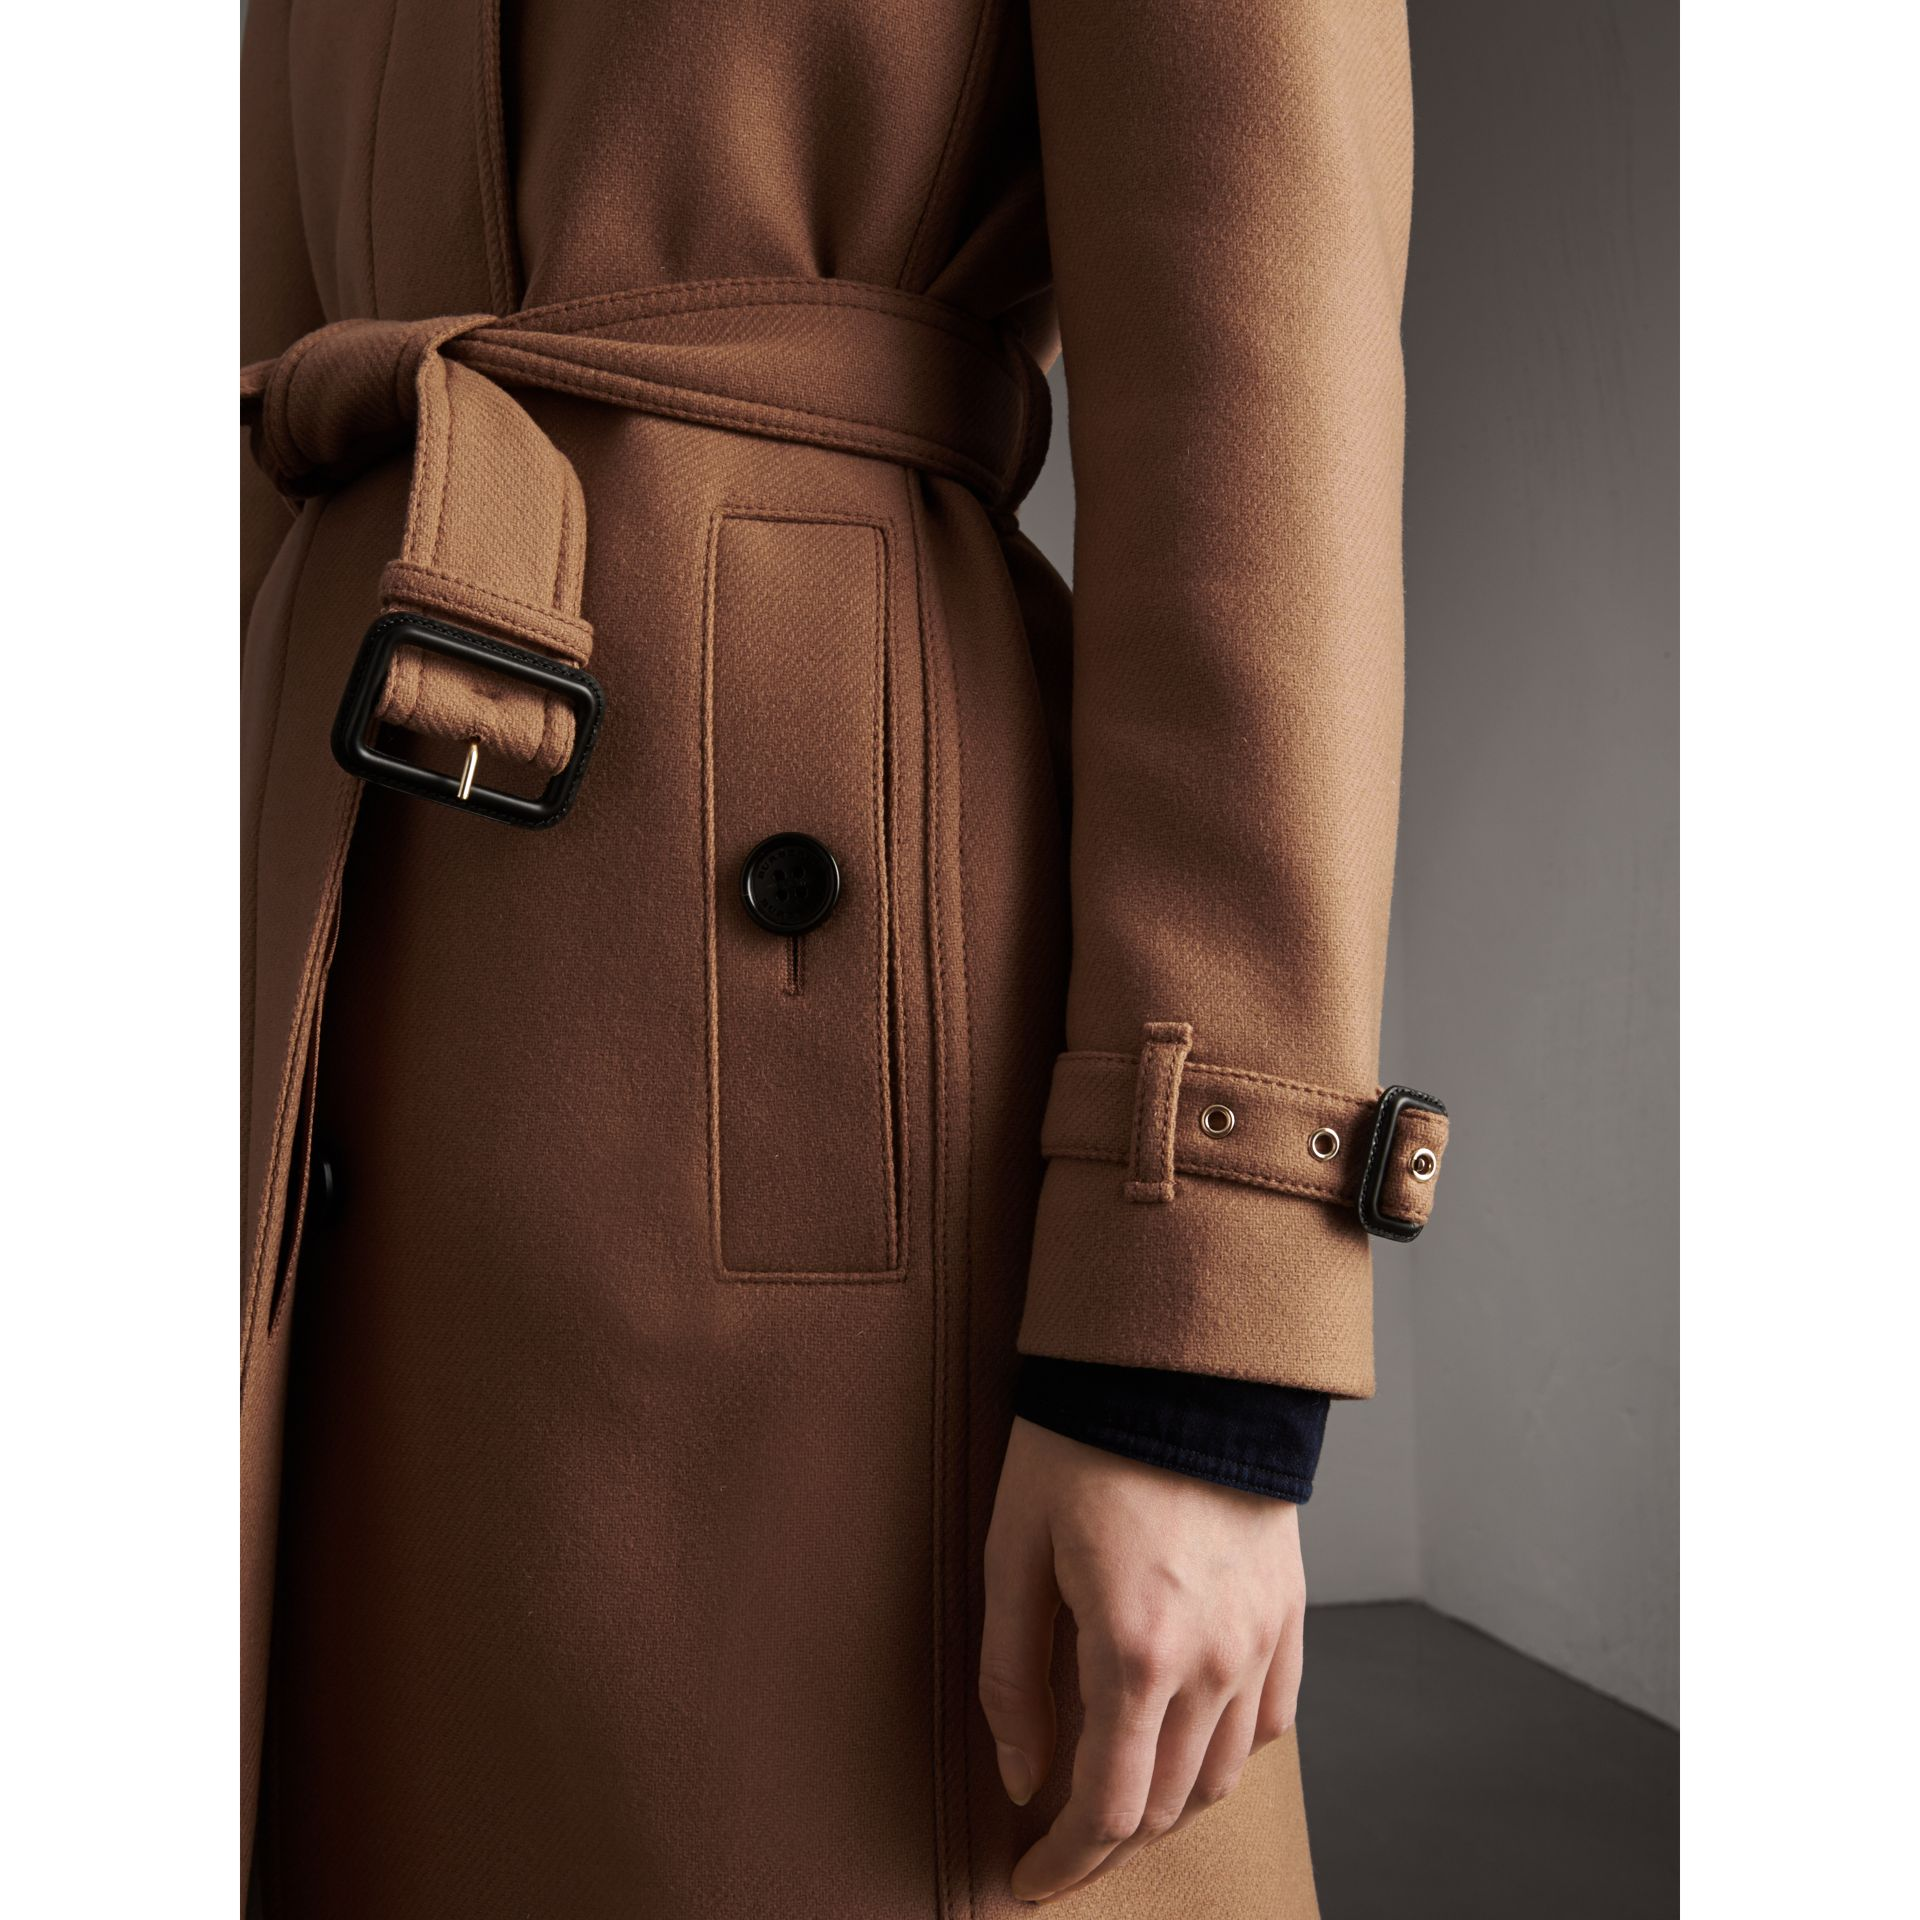 burberry technical wool cashmere funnel neck coat in camel modesens. Black Bedroom Furniture Sets. Home Design Ideas